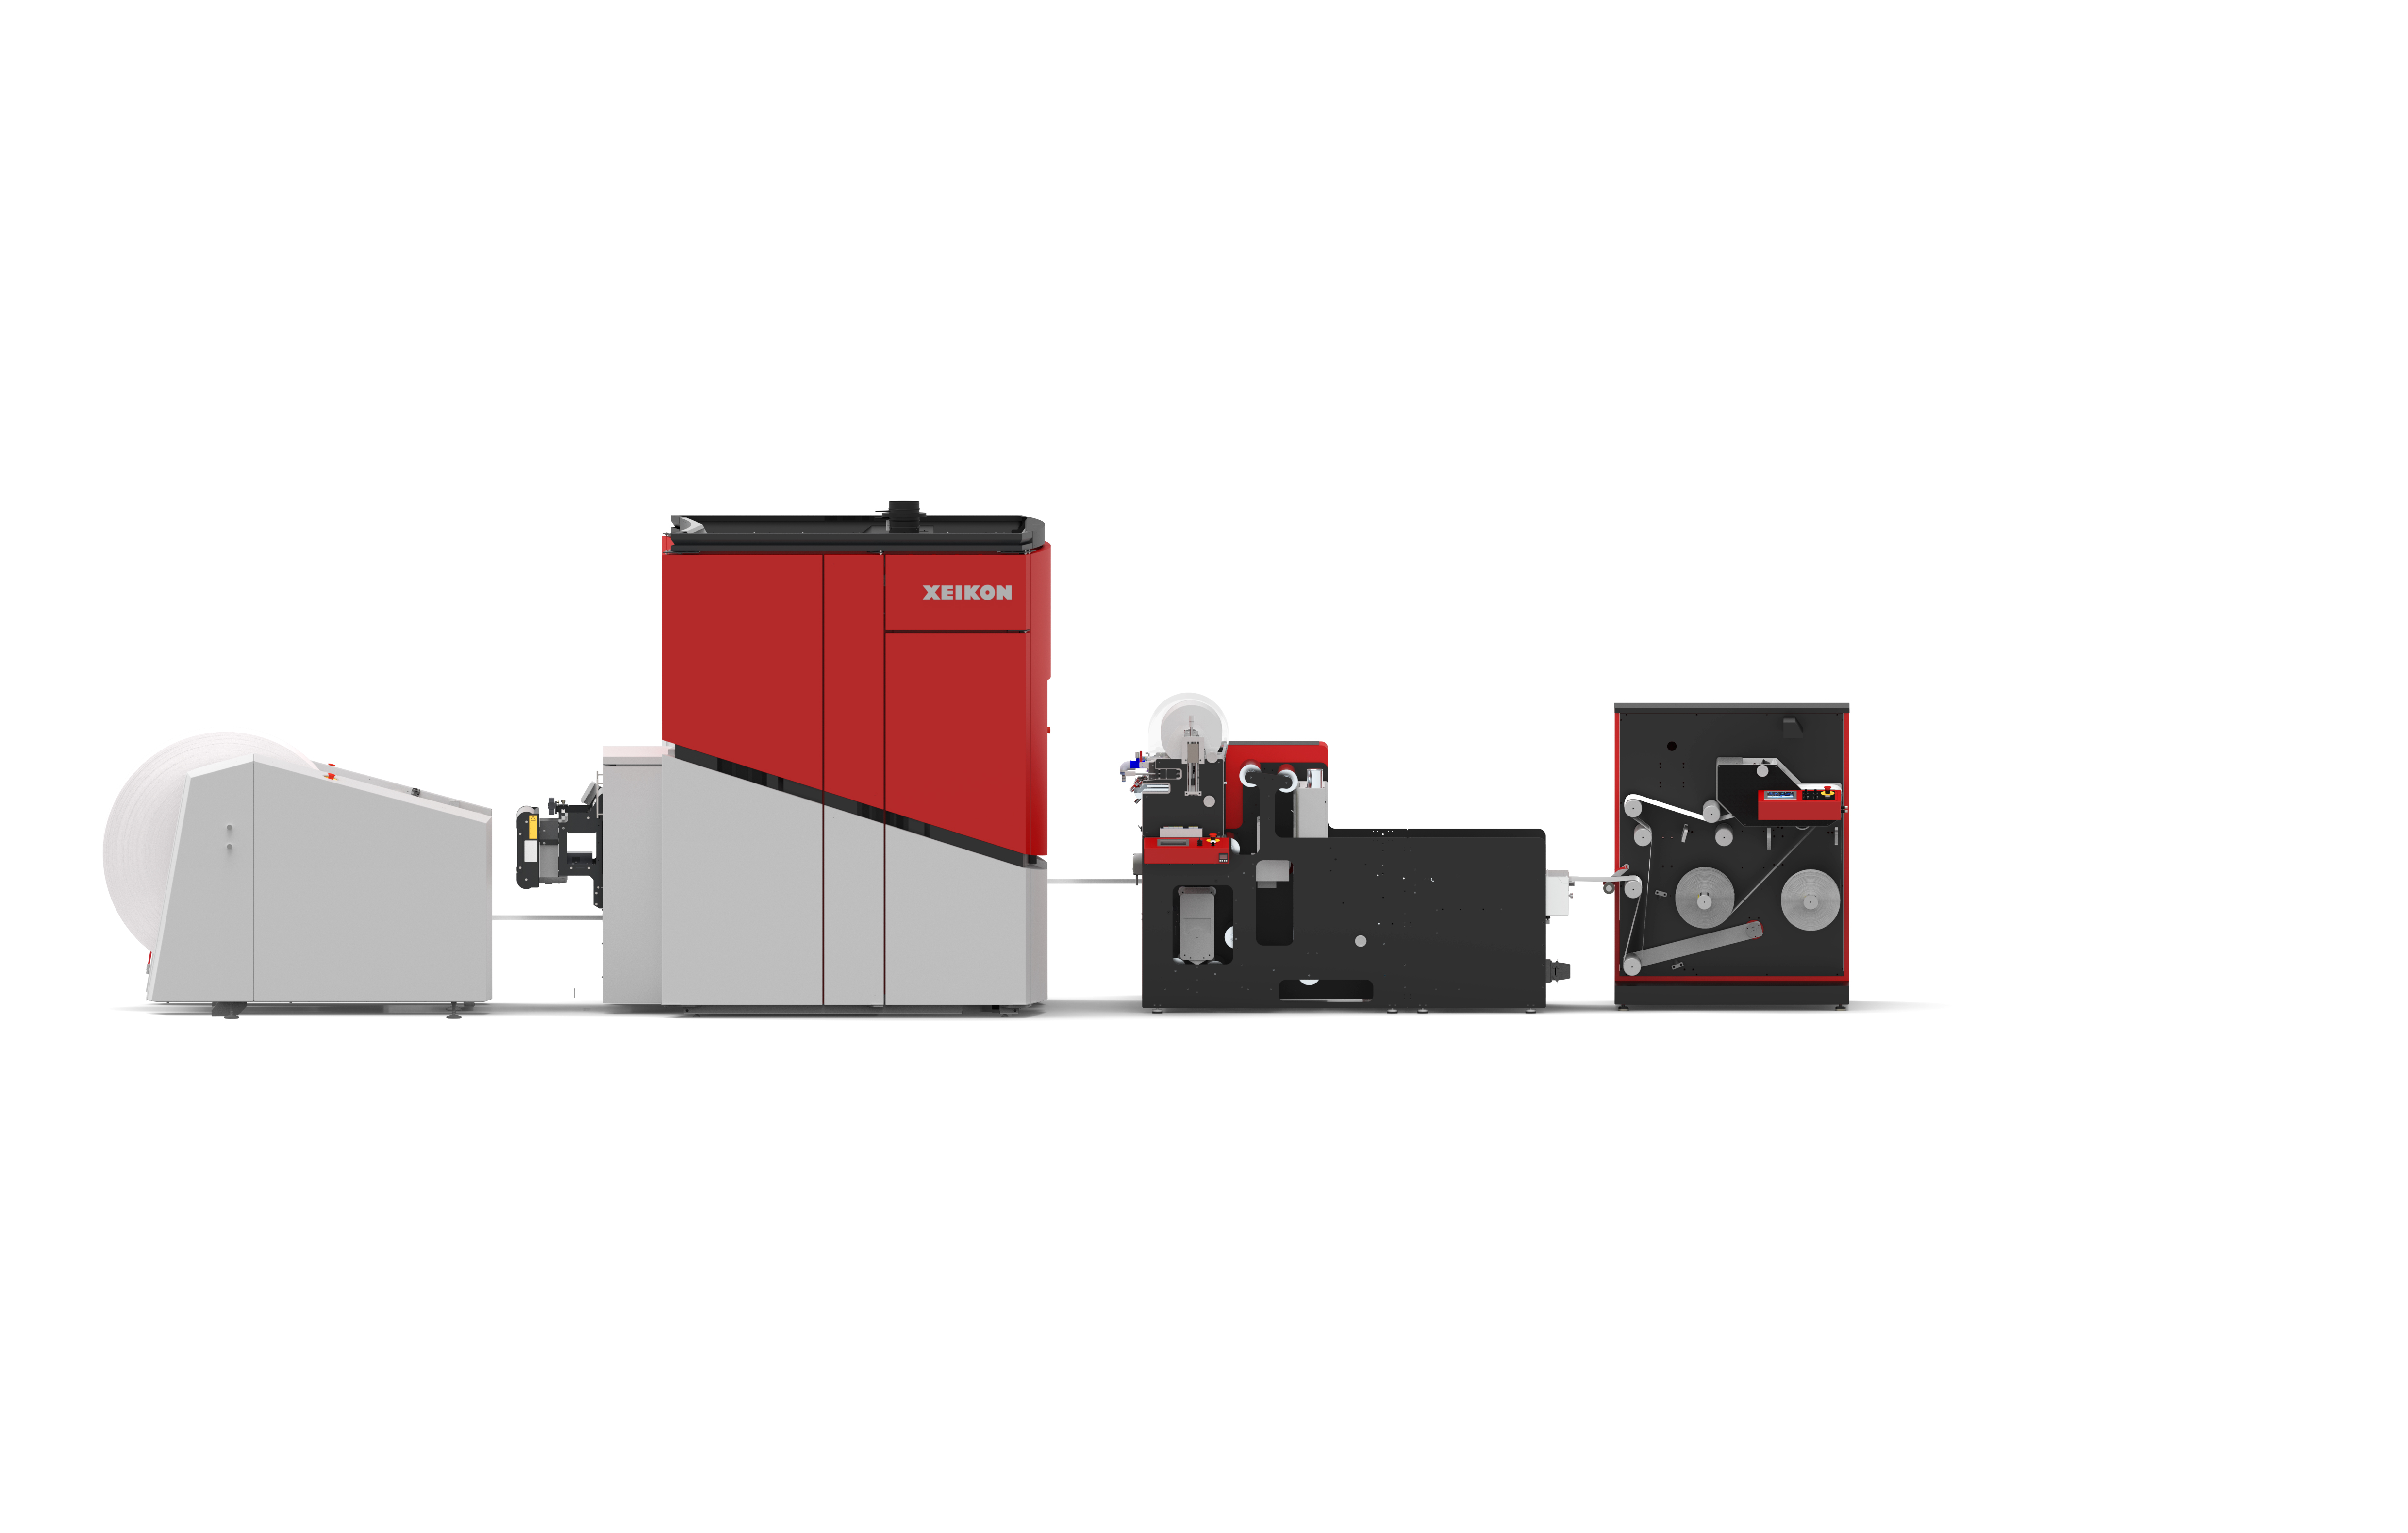 Digital production solution with a Xeikon CX3